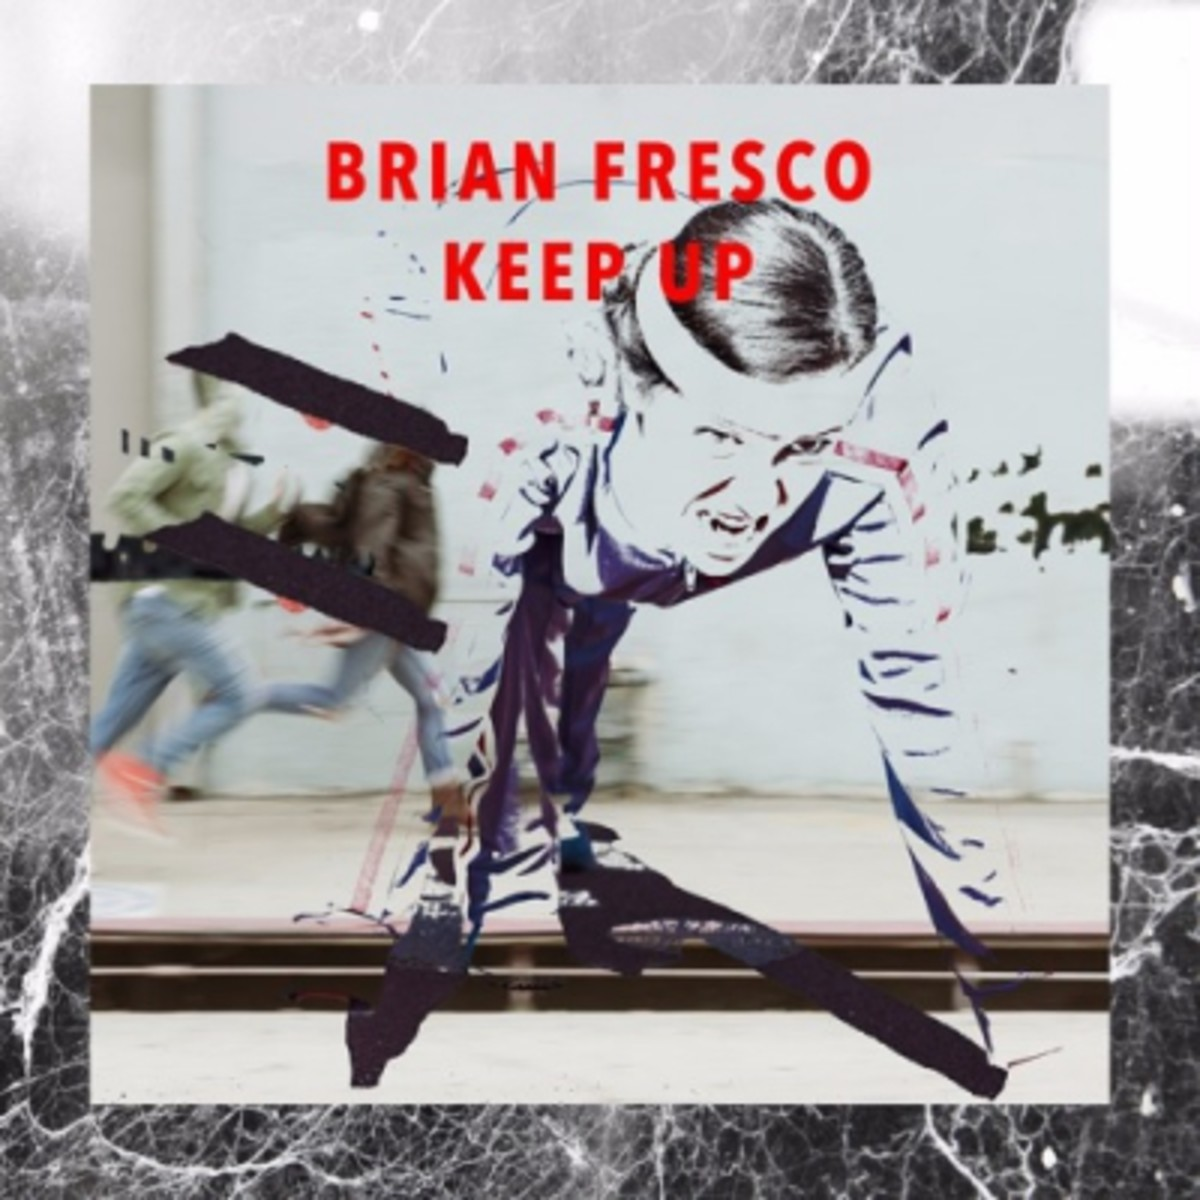 brian-fresco-keep-up.jpg